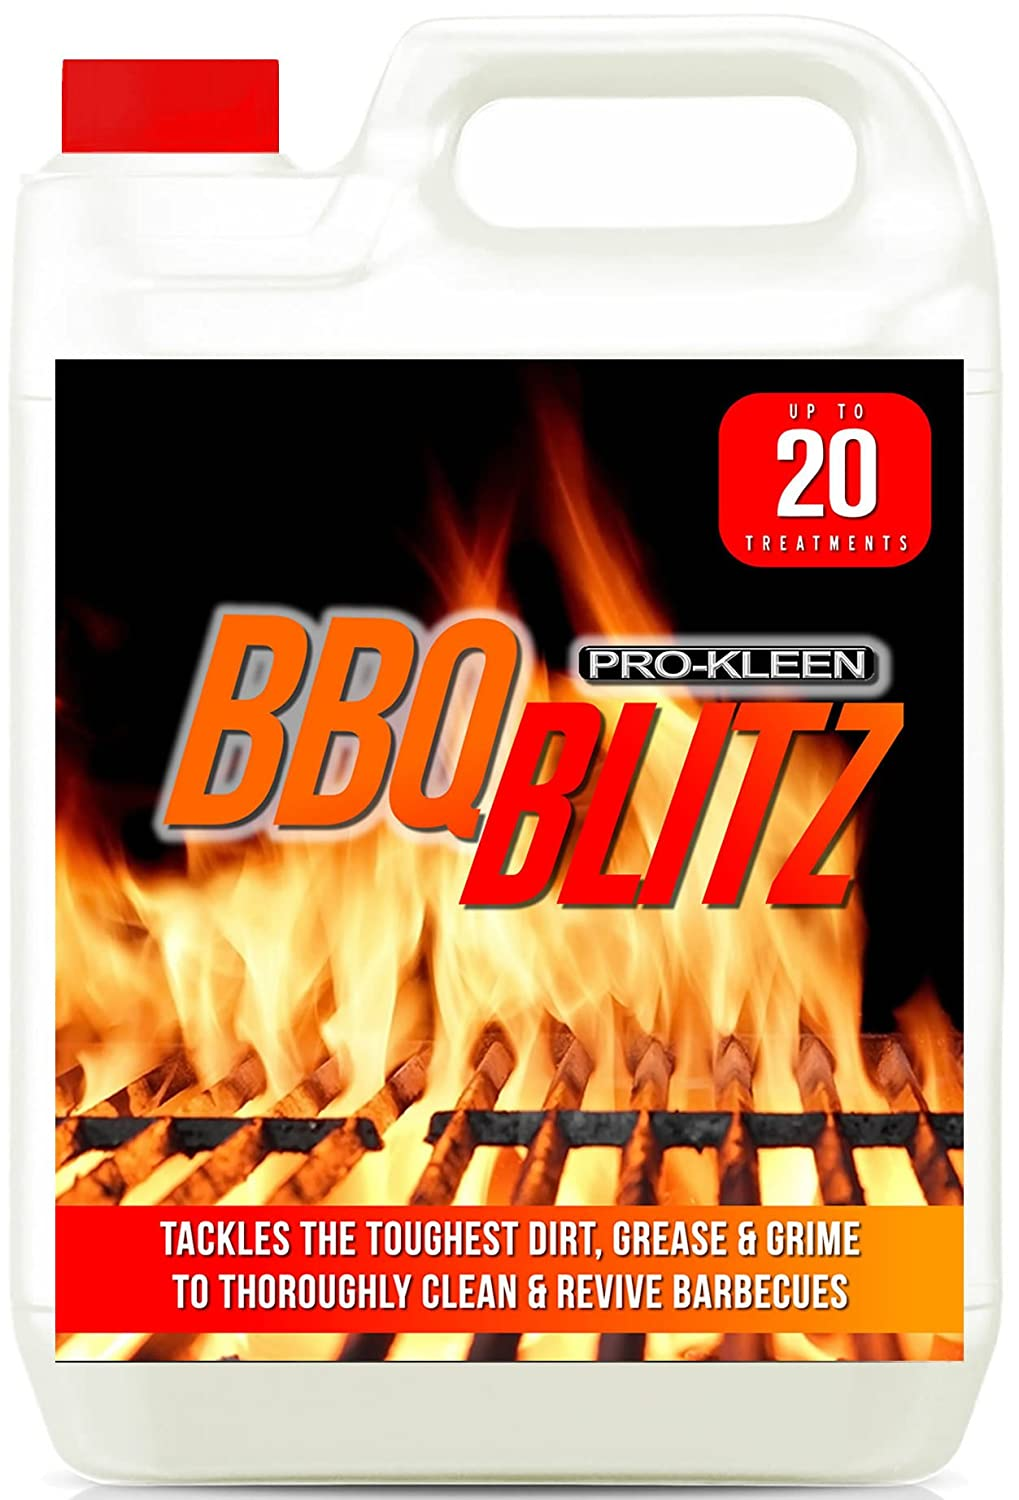 Pro-Kleen 1 X 5 Litres Barbecue Blitz Cleaner (INCLUDES 10 BAGS)